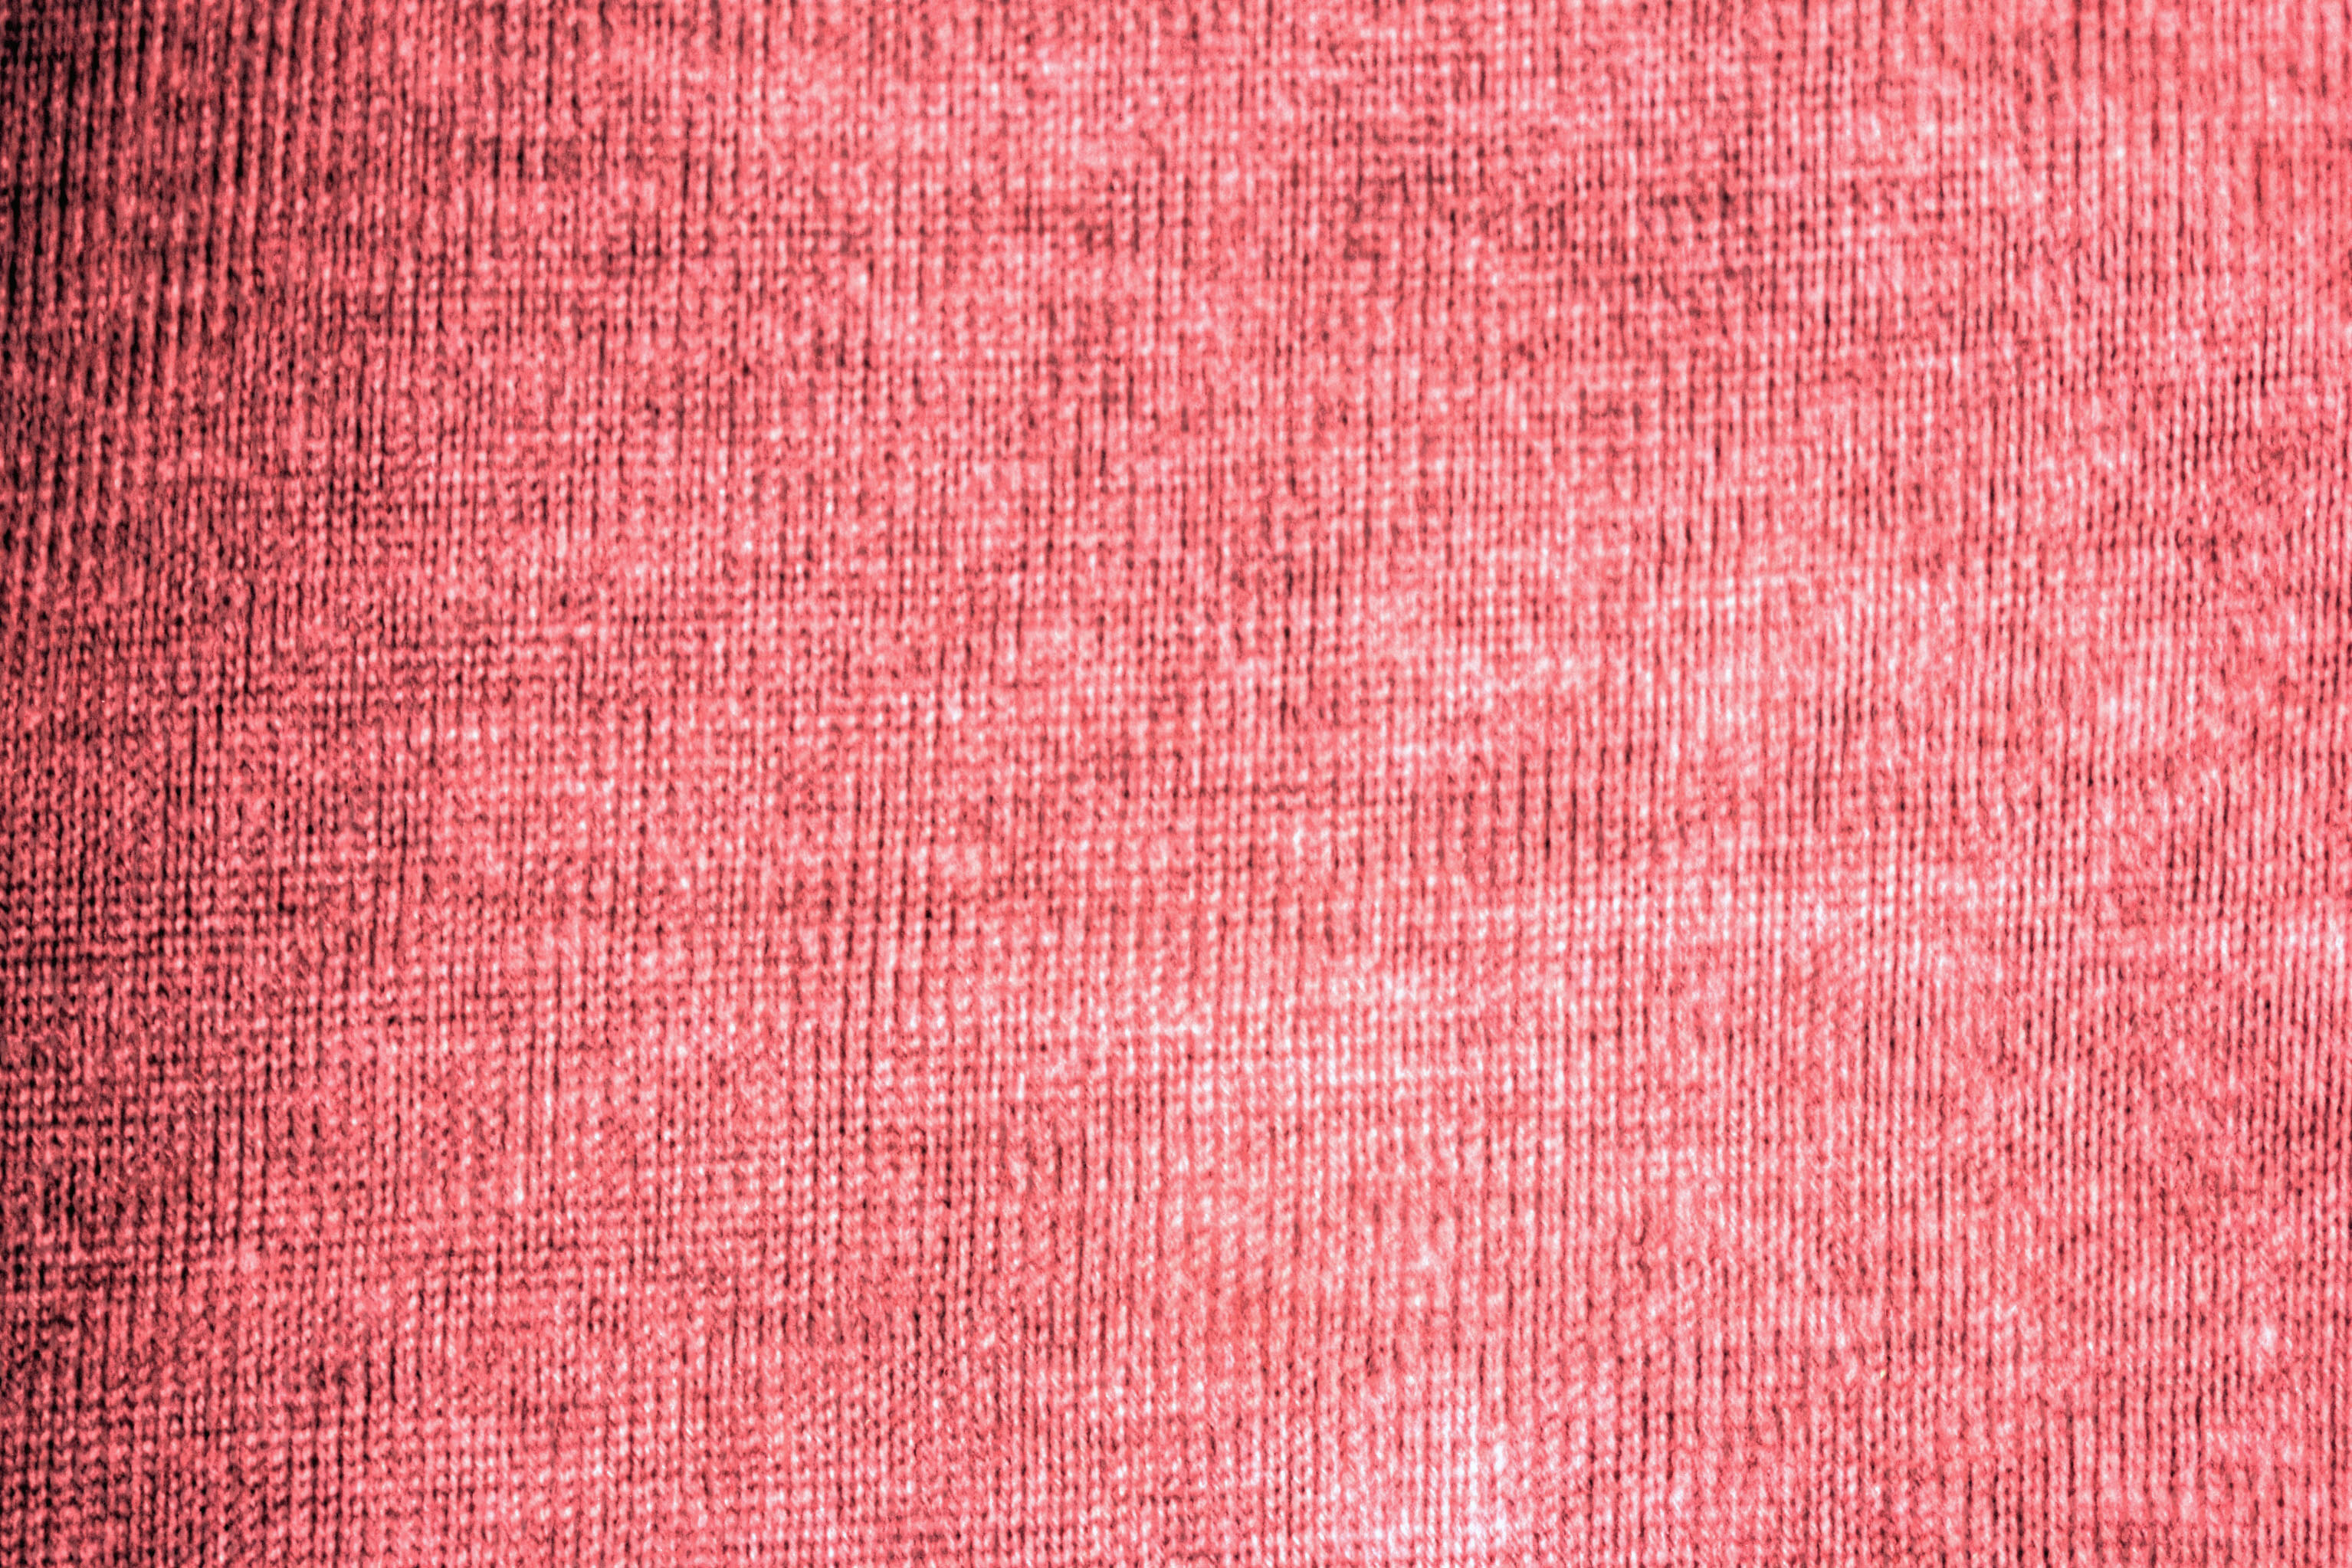 Abstract Vector Wallpaper Hd Red Fabric Texture Image Free Stock Photo Public